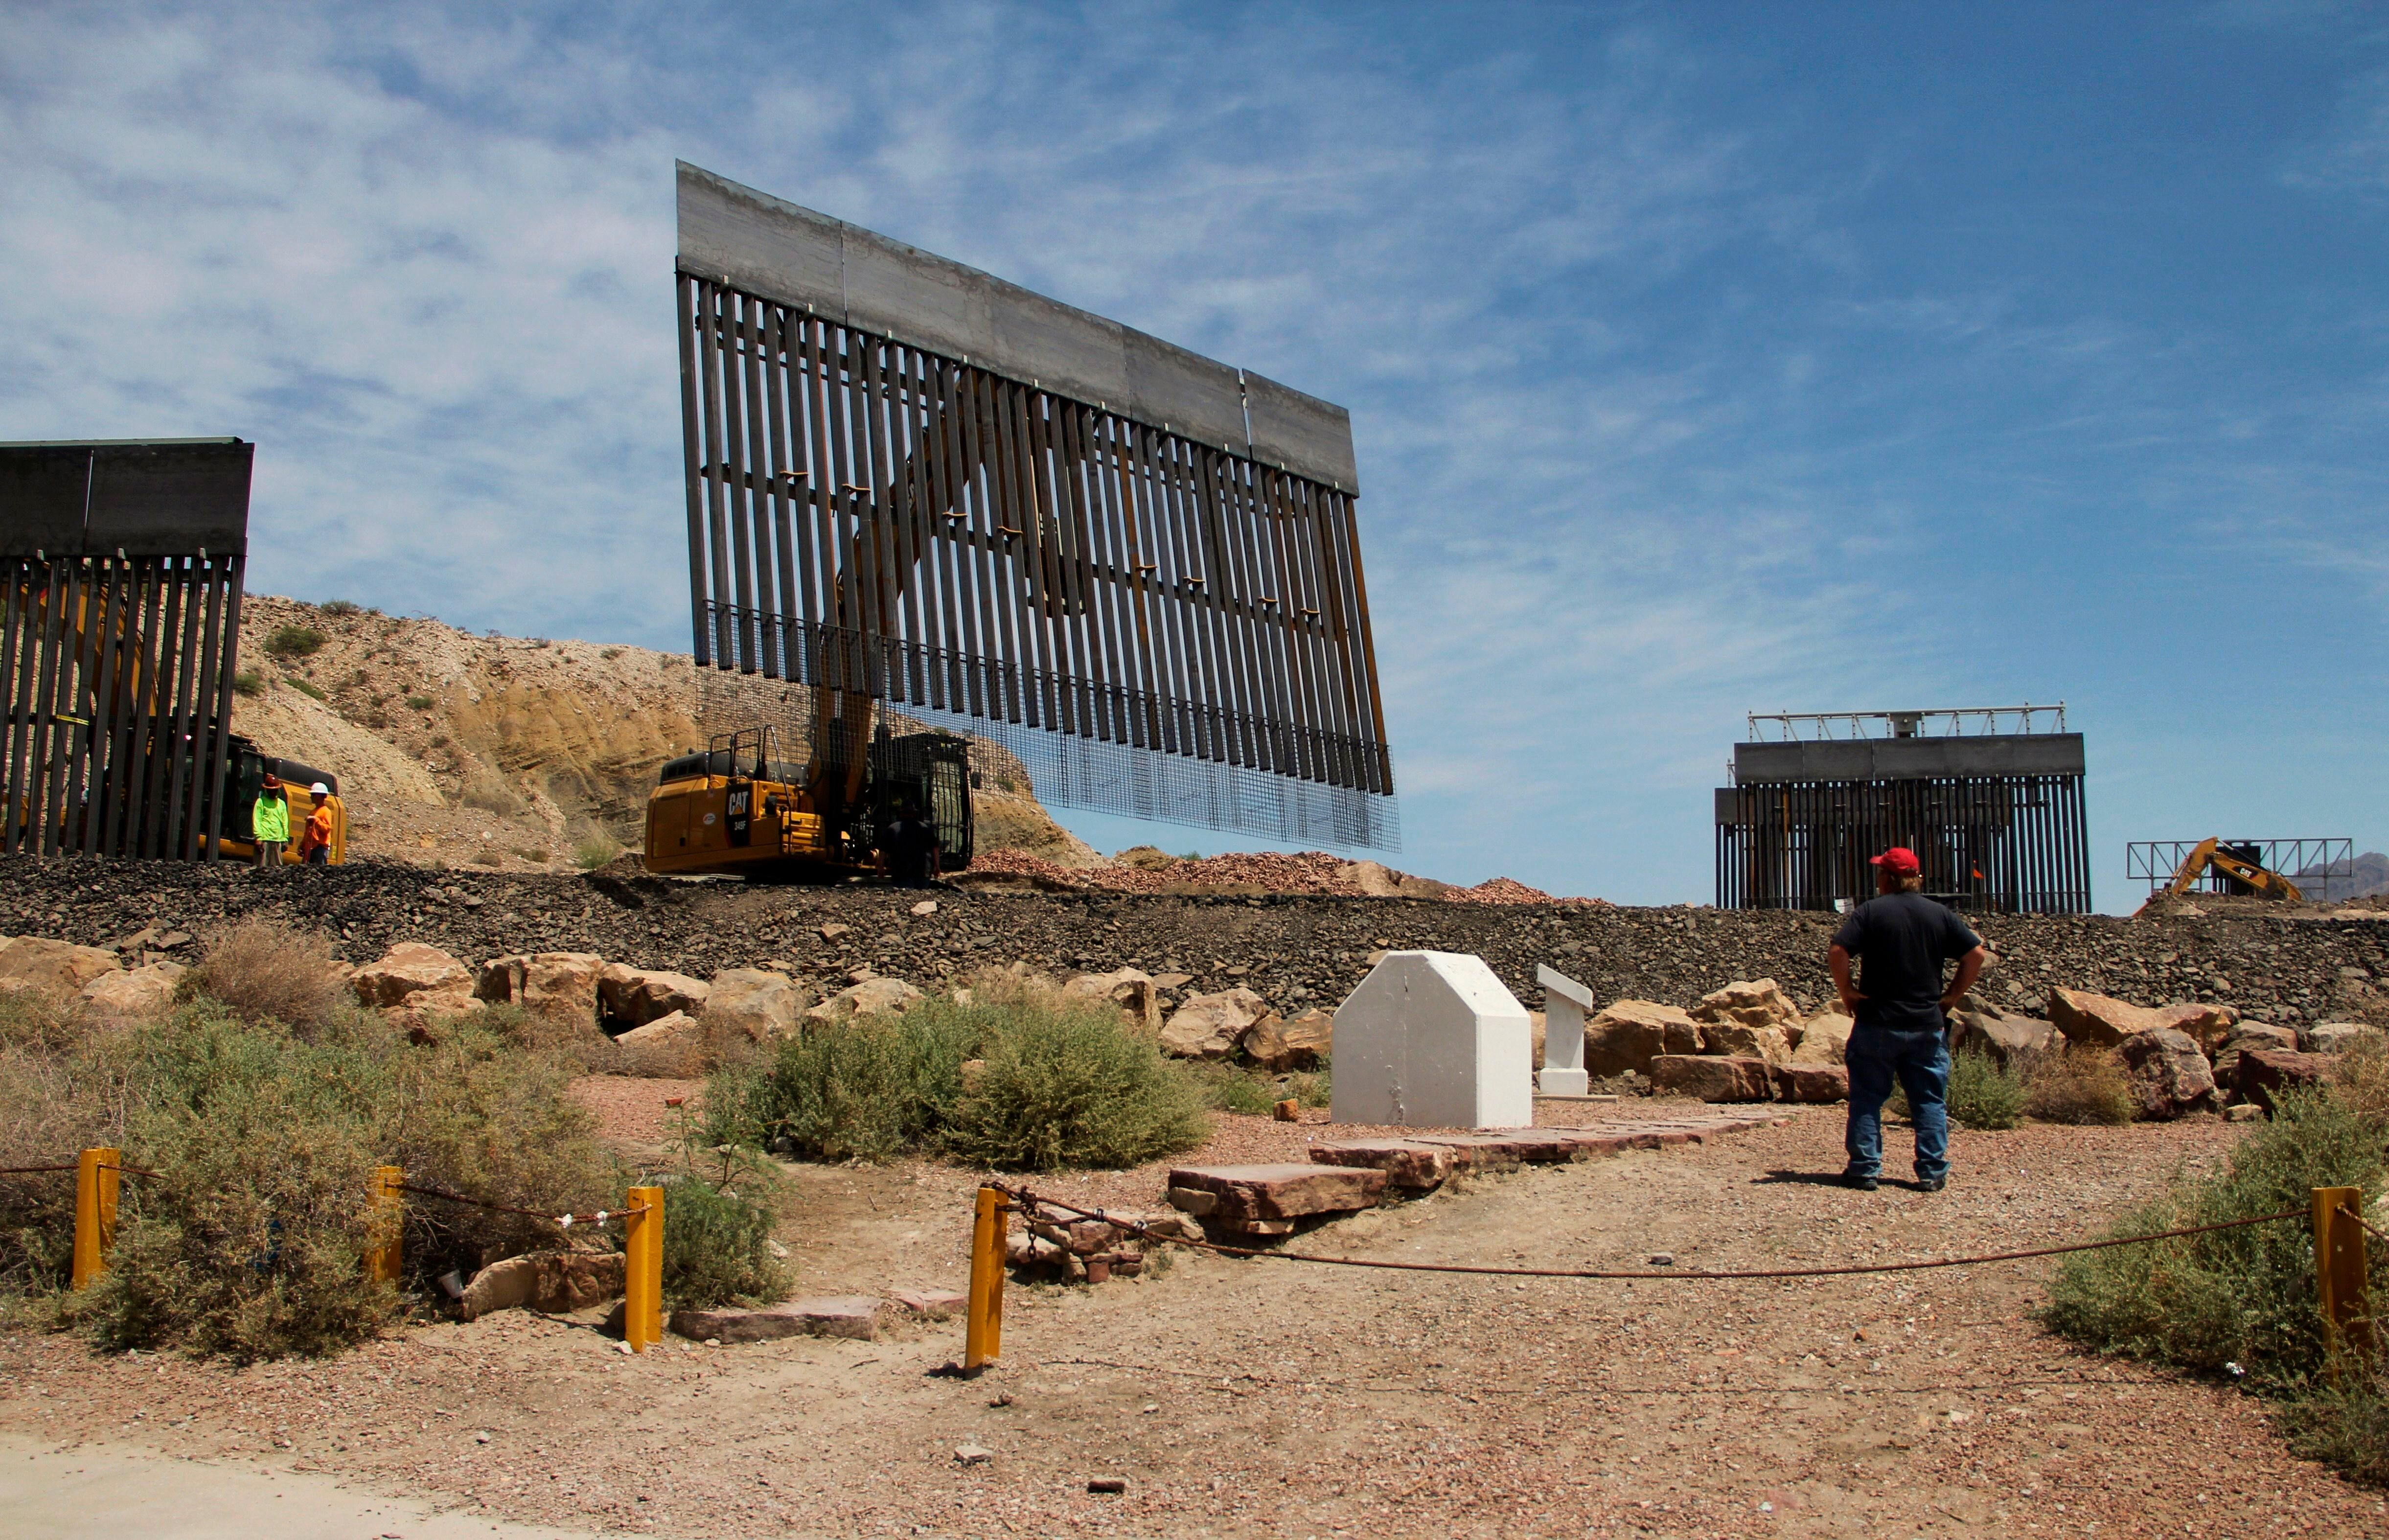 Workers build a border fence on private property located in the limits of Texas and New Mexico on Sunday.